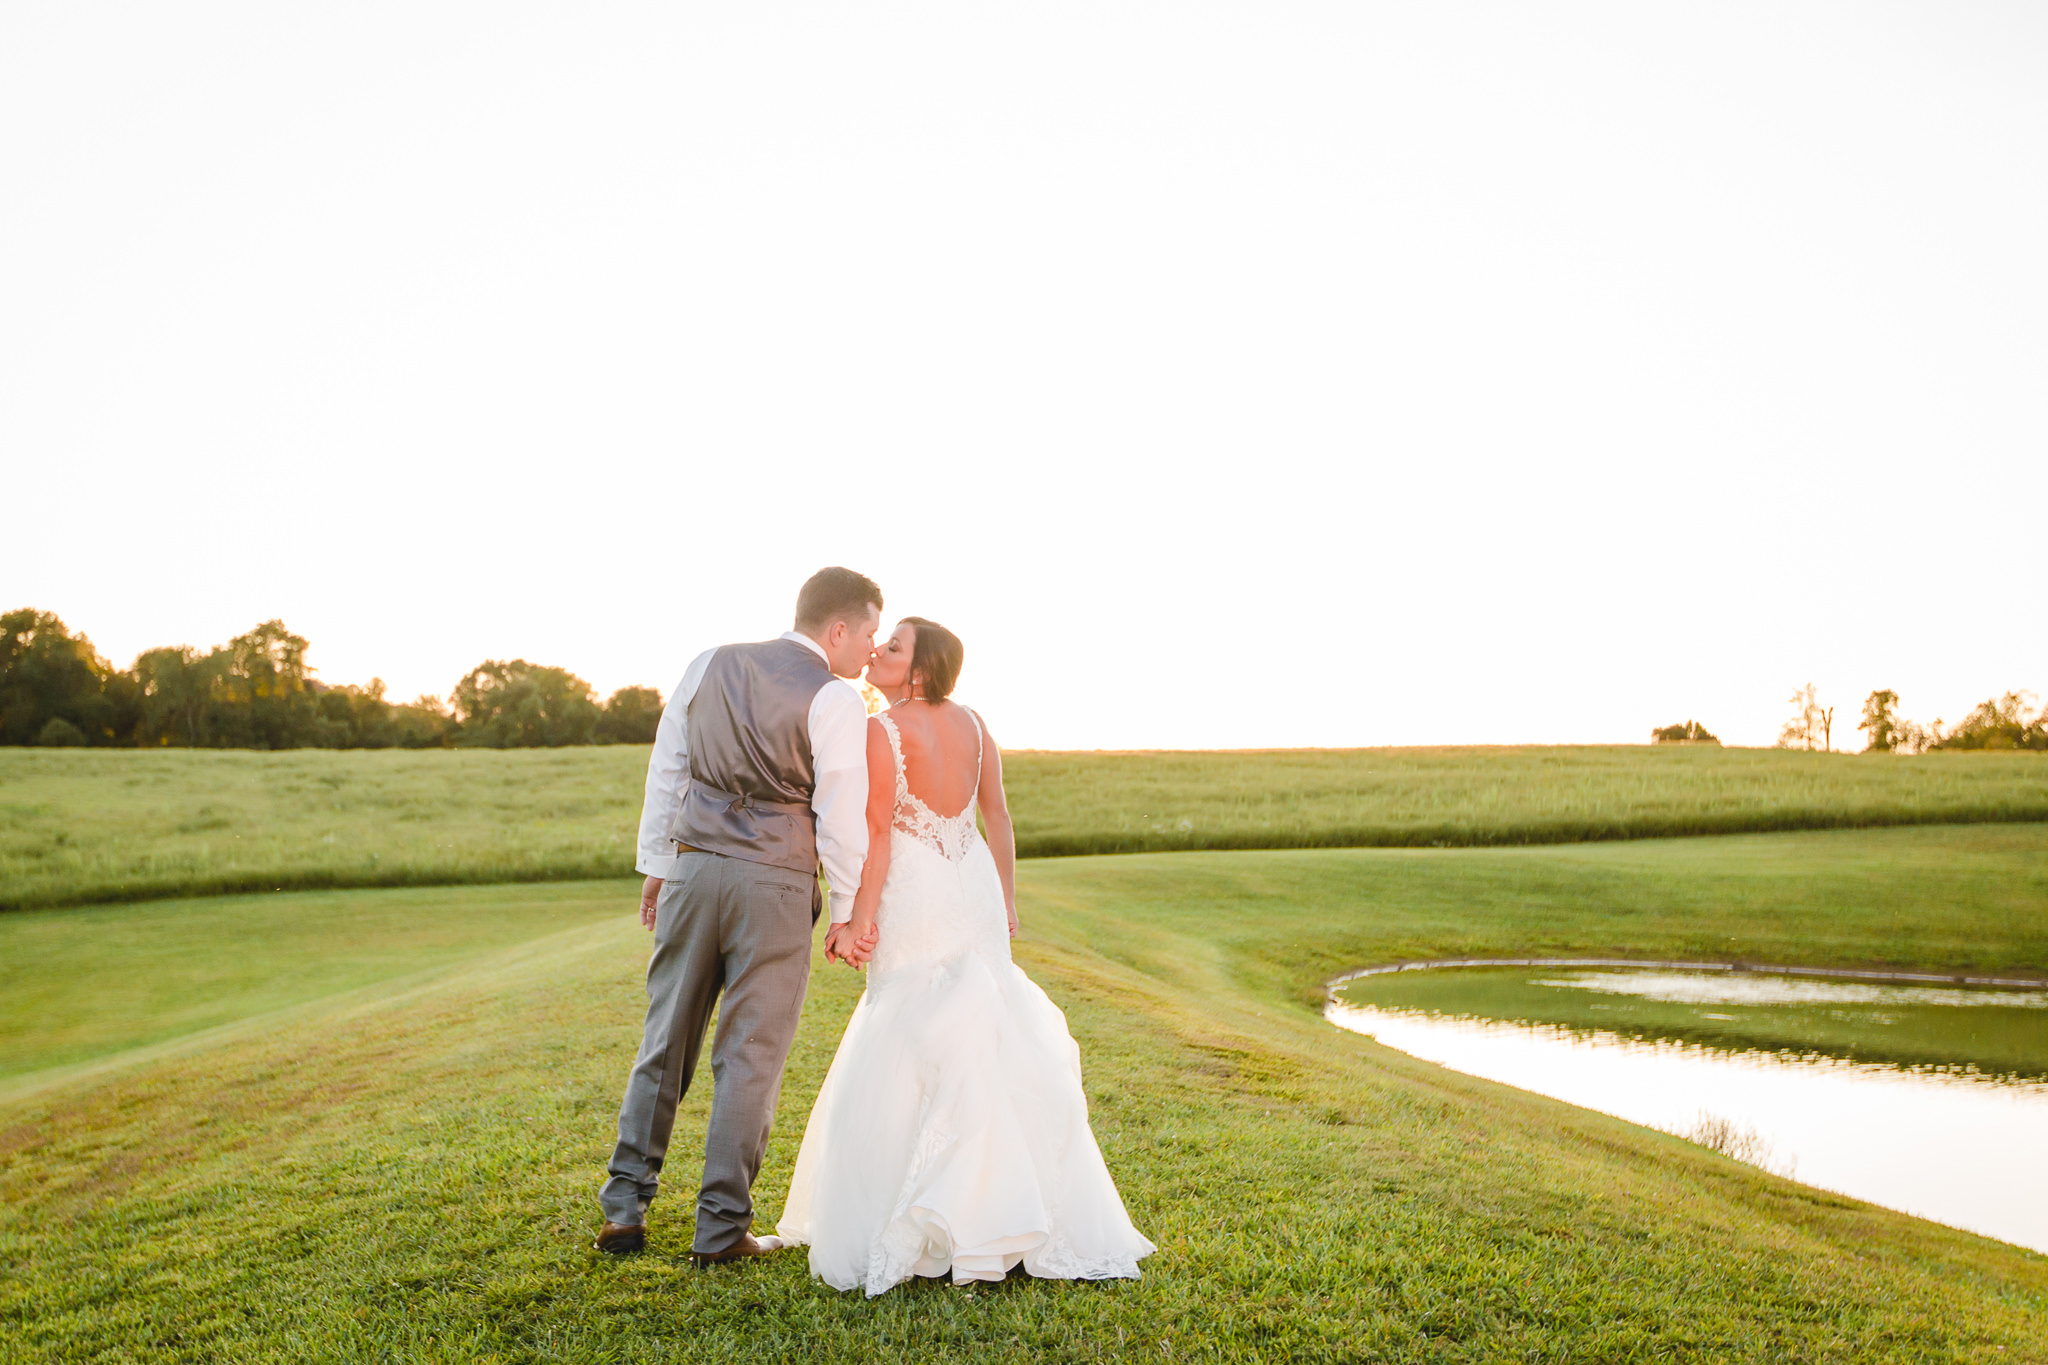 Bride and groom kiss by the pond at sunset at White Barn